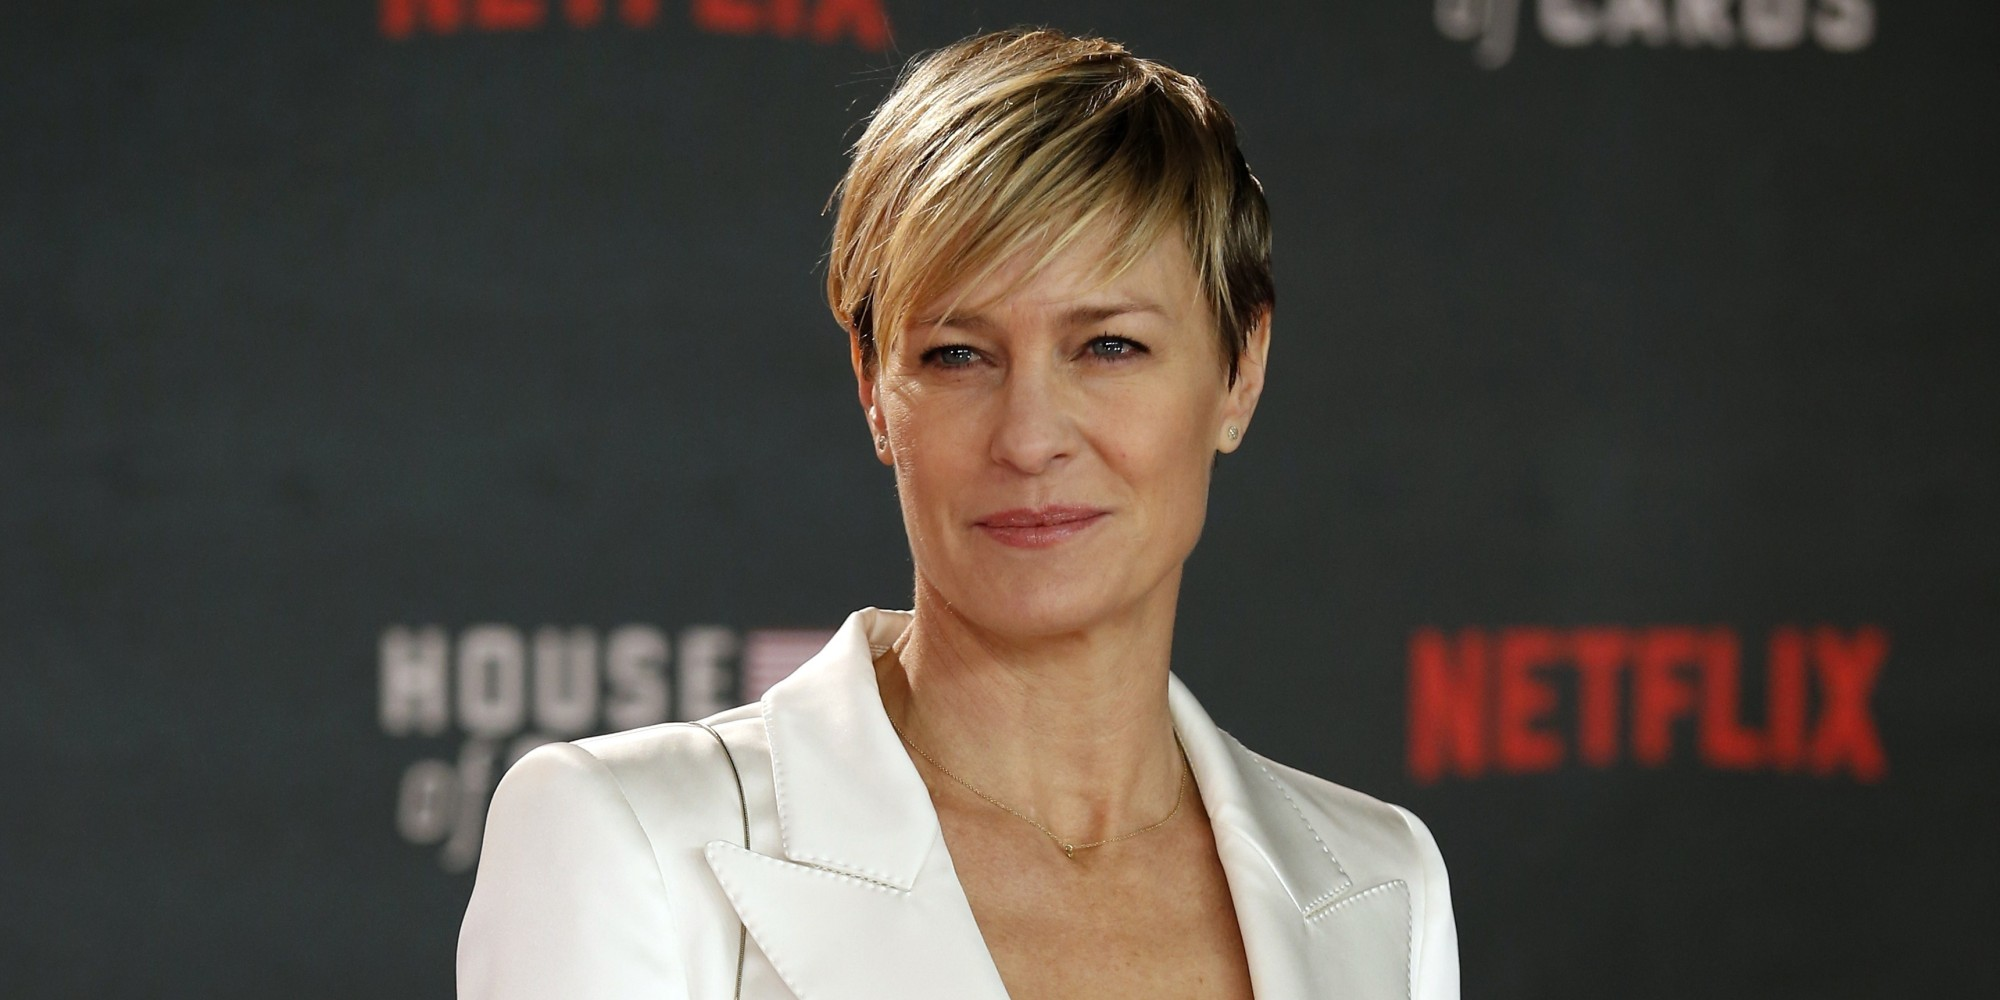 Robin Wright Haircut On House Of Cards